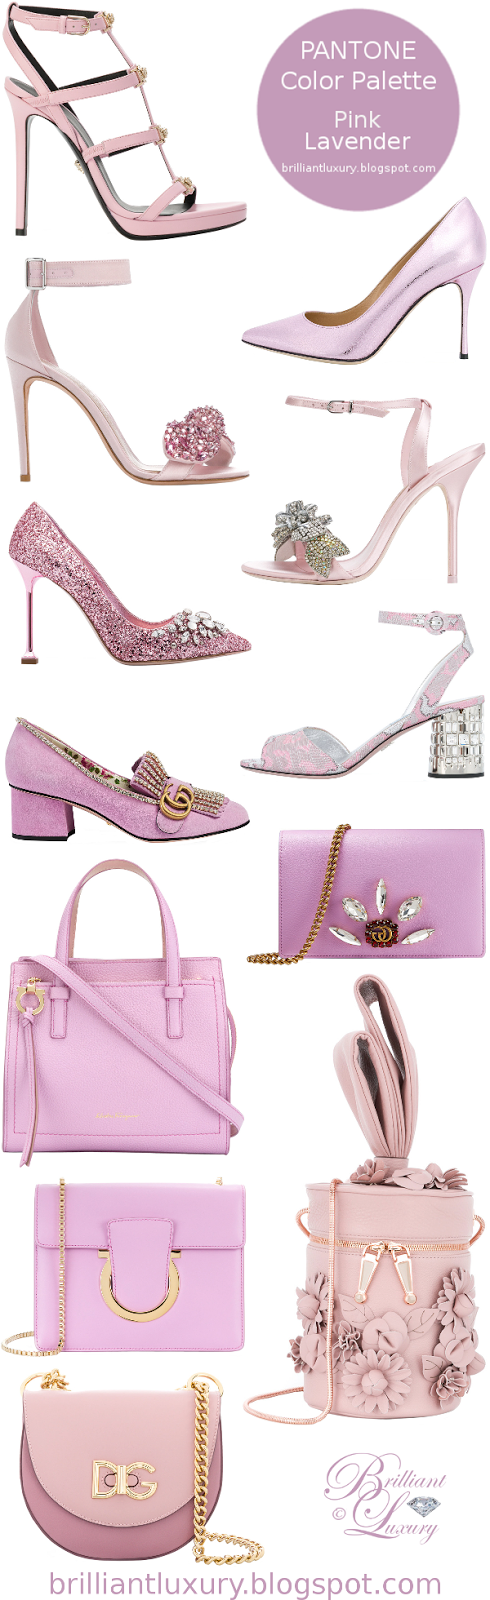 Brilliant Luxury ♦ Pantone Fashion Color ~ pink lavender